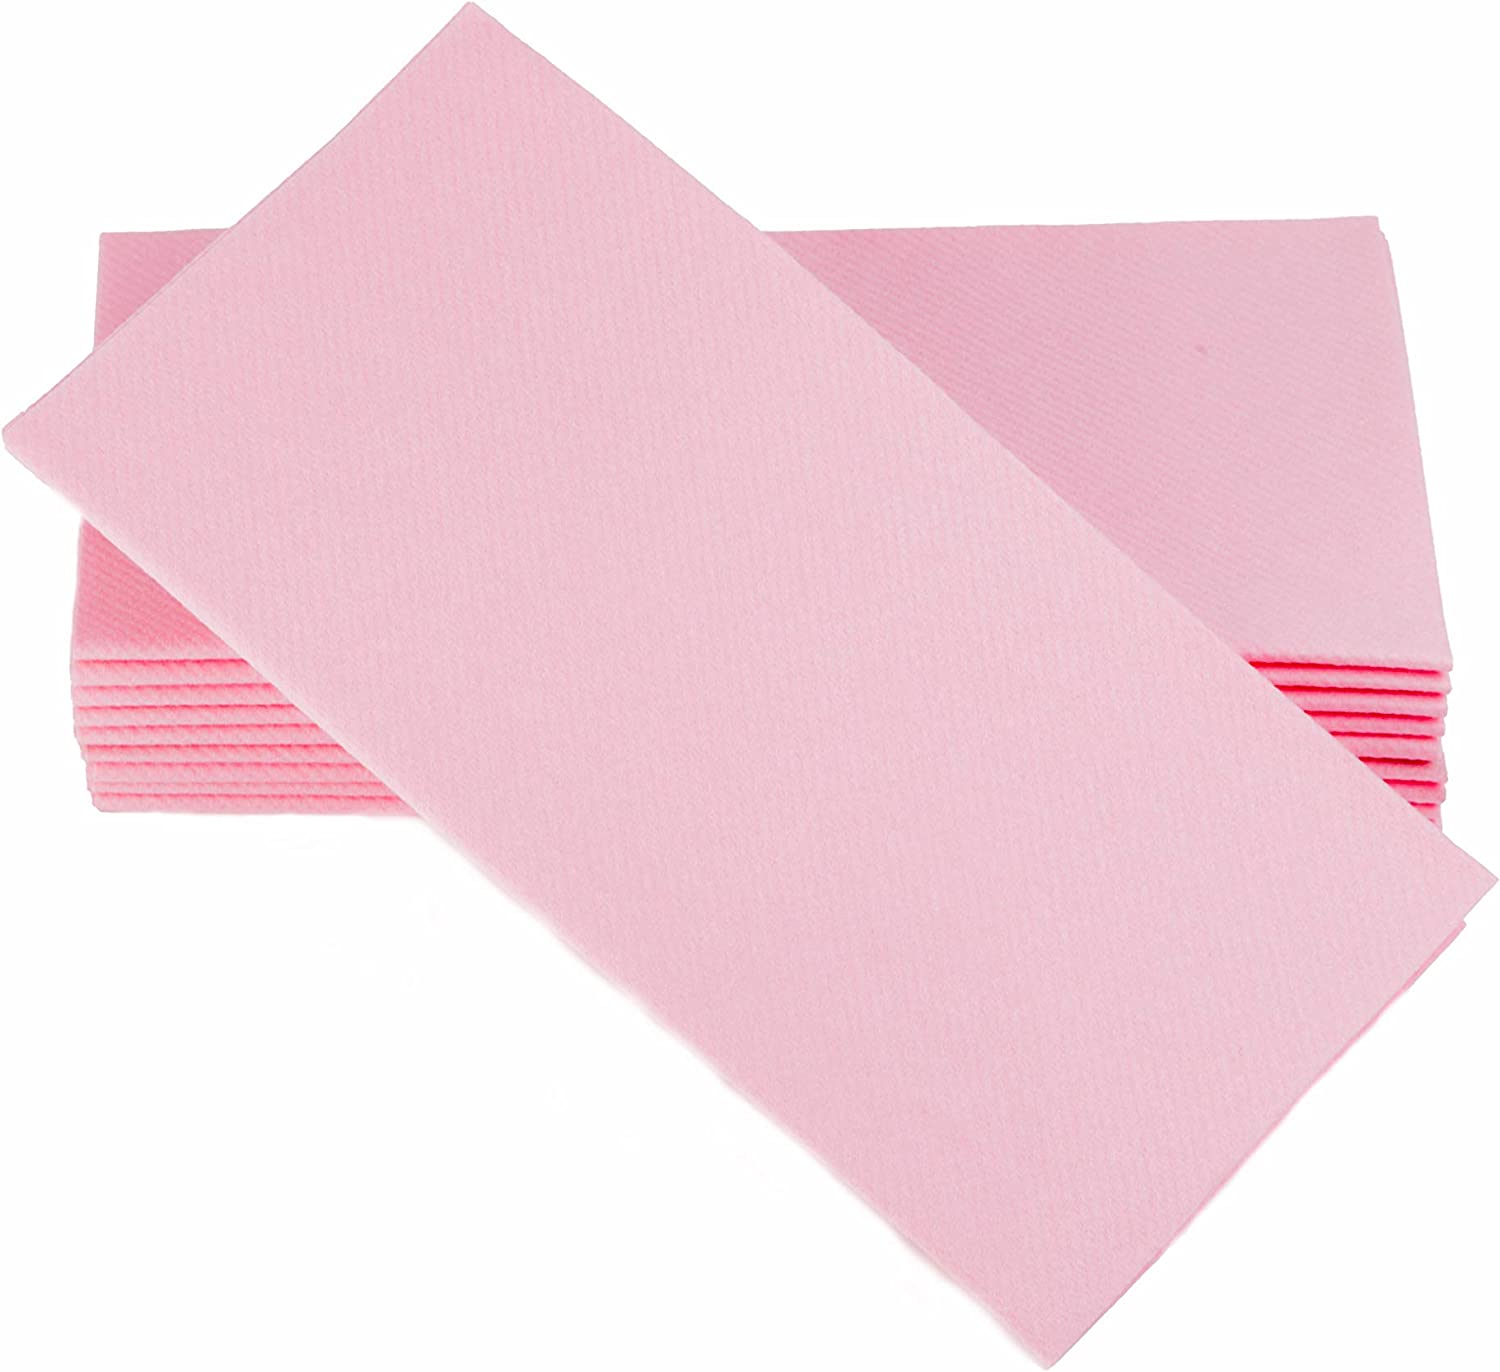 """Simulinen Colored Napkins - Decorative Cloth Like & Disposable, Dinner Napkins - Pink, Soft, Absorbent & Durable - 16""""x16"""" - Great for Any Occasion! - Box of 50"""